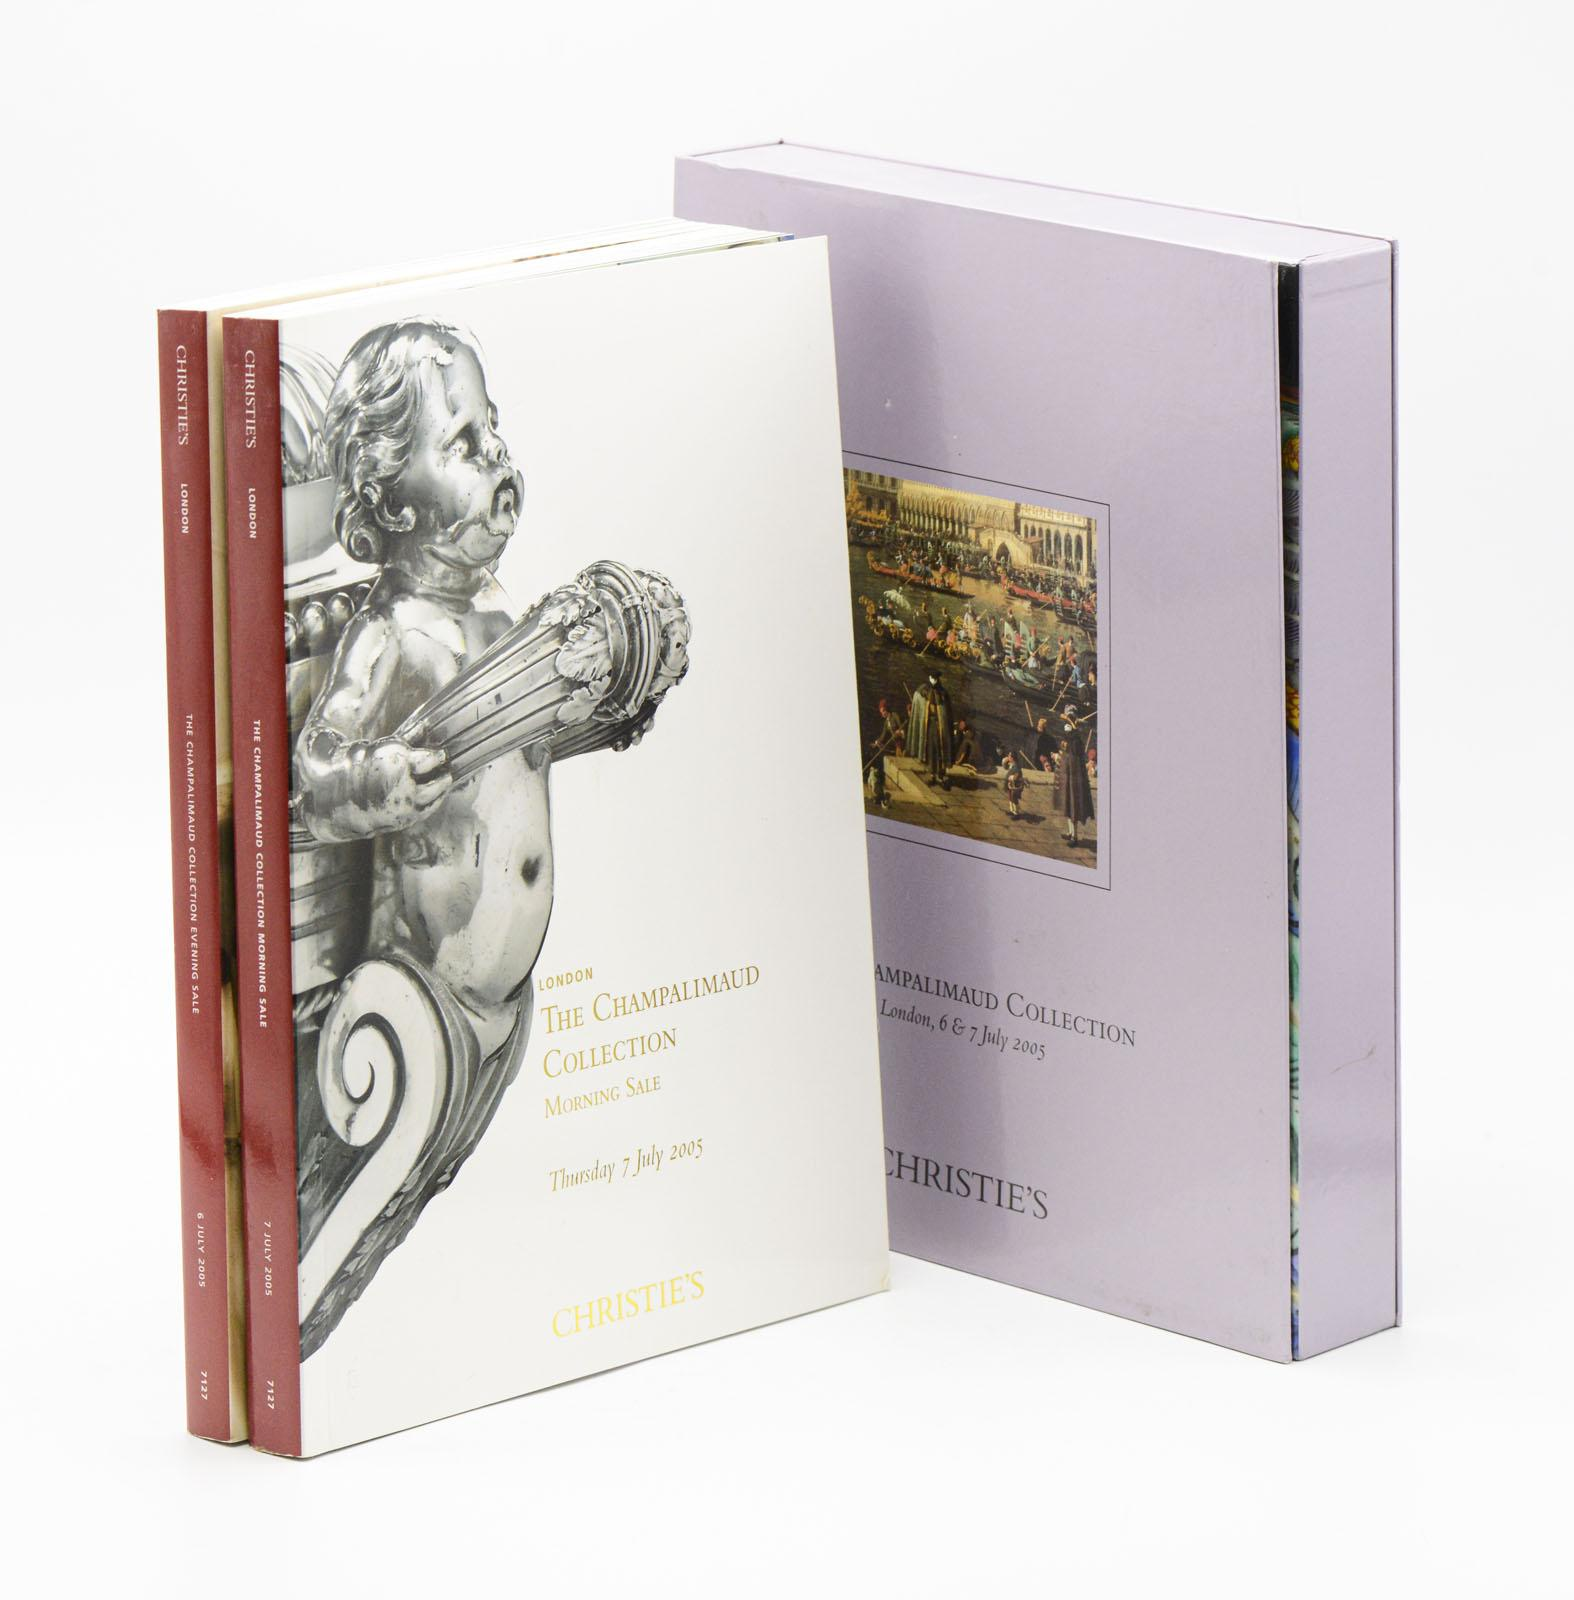 THE CHAMPALIMAUD COLLECTION, Christie's, 2 vols.